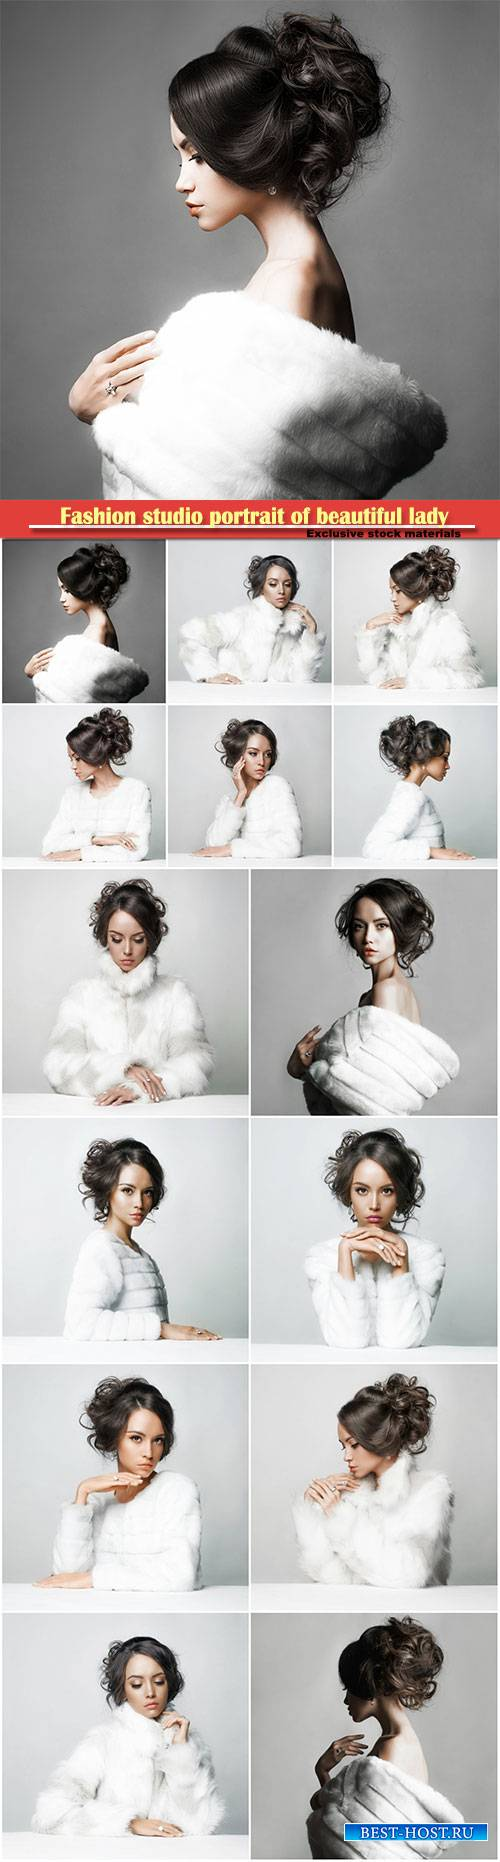 Fashion studio portrait of beautiful lady with elegant hairstyle in white f ...